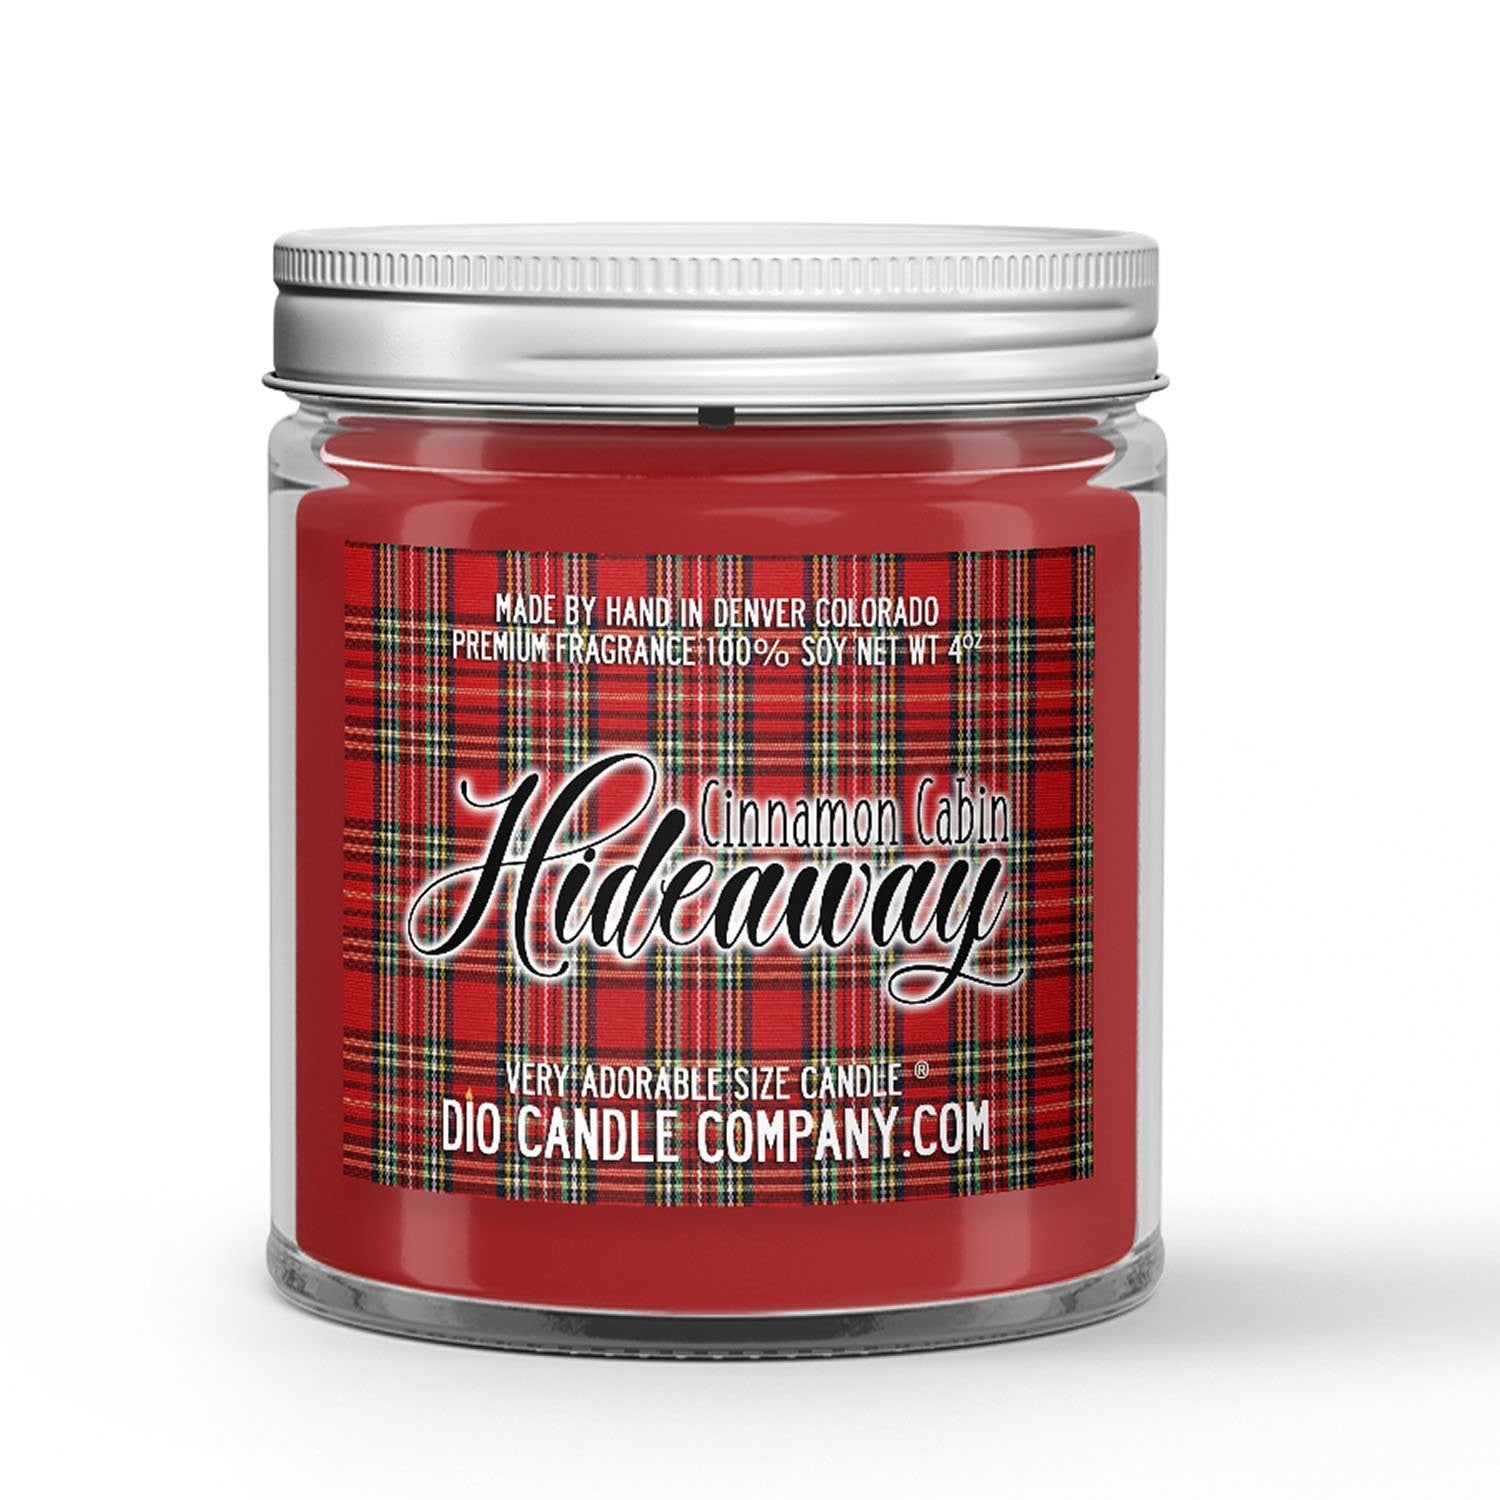 Cinnamon Cabin Hideaway Candle Fireplace - Cinnamon - Vanilla Scented - Dio Candle Company